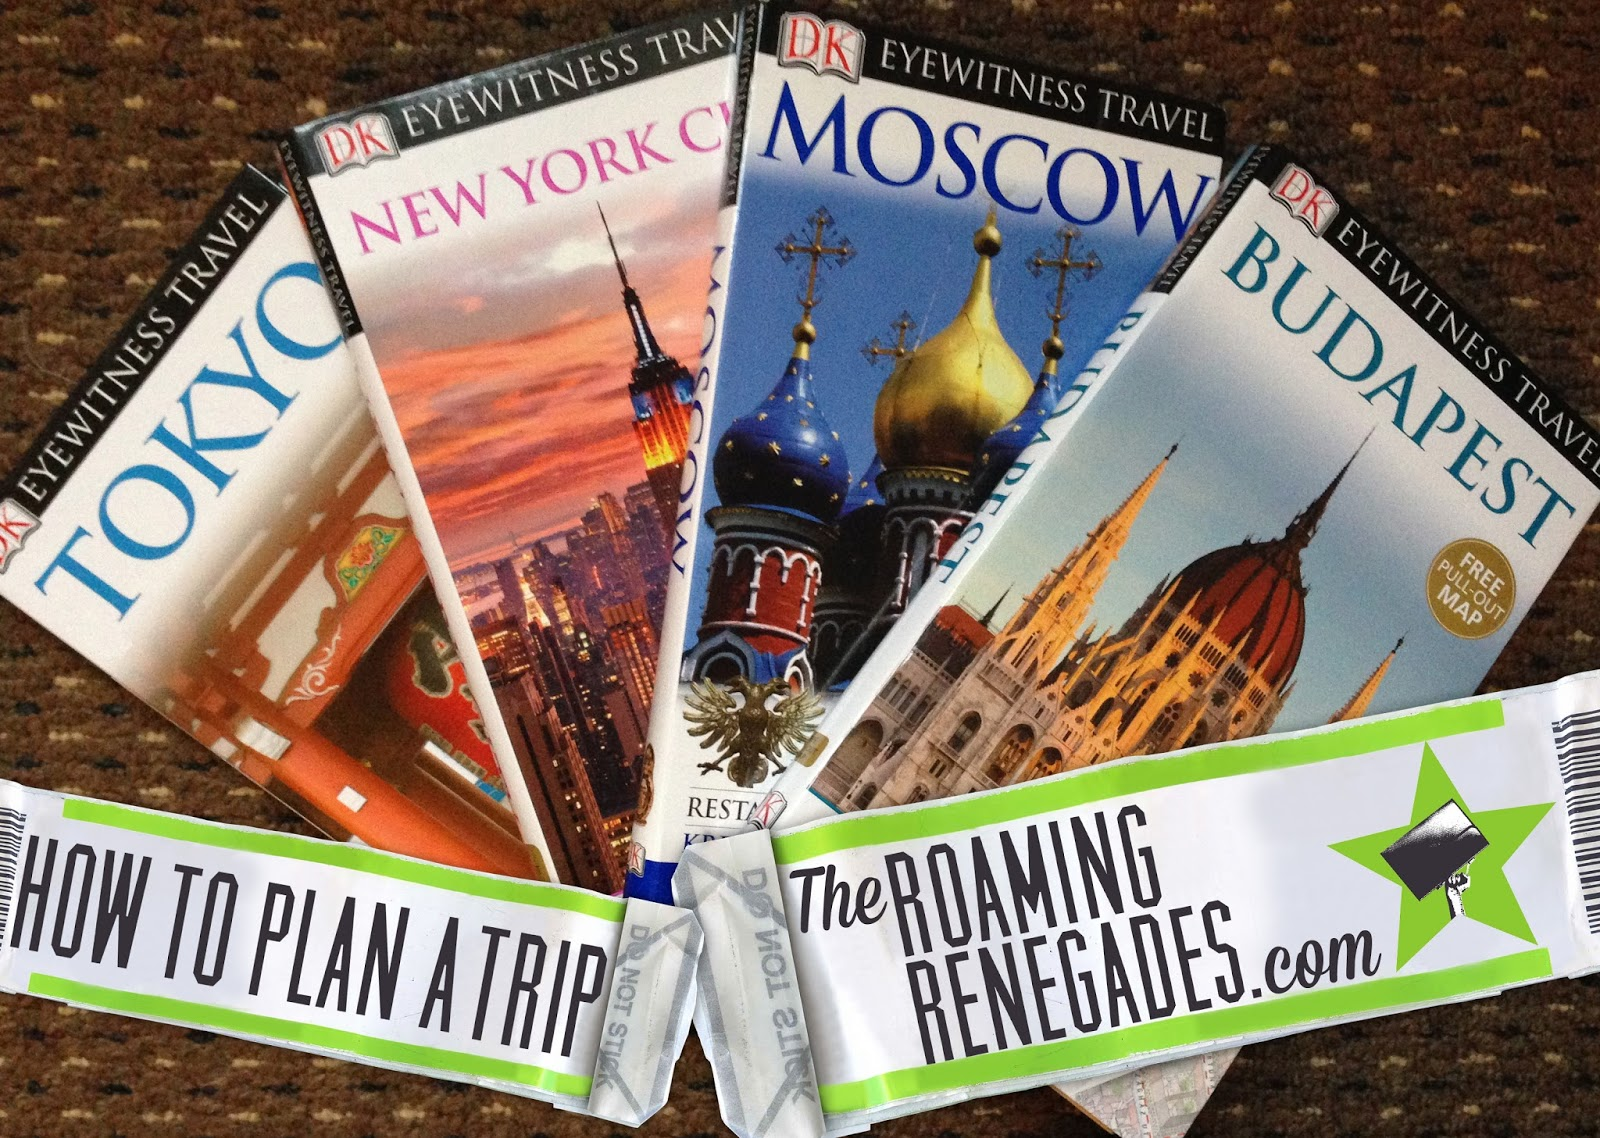 How To Plan Your Trip/ Travel (To Itinerary or not to Itinerary?!) vacation, planning, planner, road trip, road planner, travel planner, route, online travel, trip map, scrapbooks, Planning a Trip, tripadvisor, travel agency, tours, guide book, sketching,